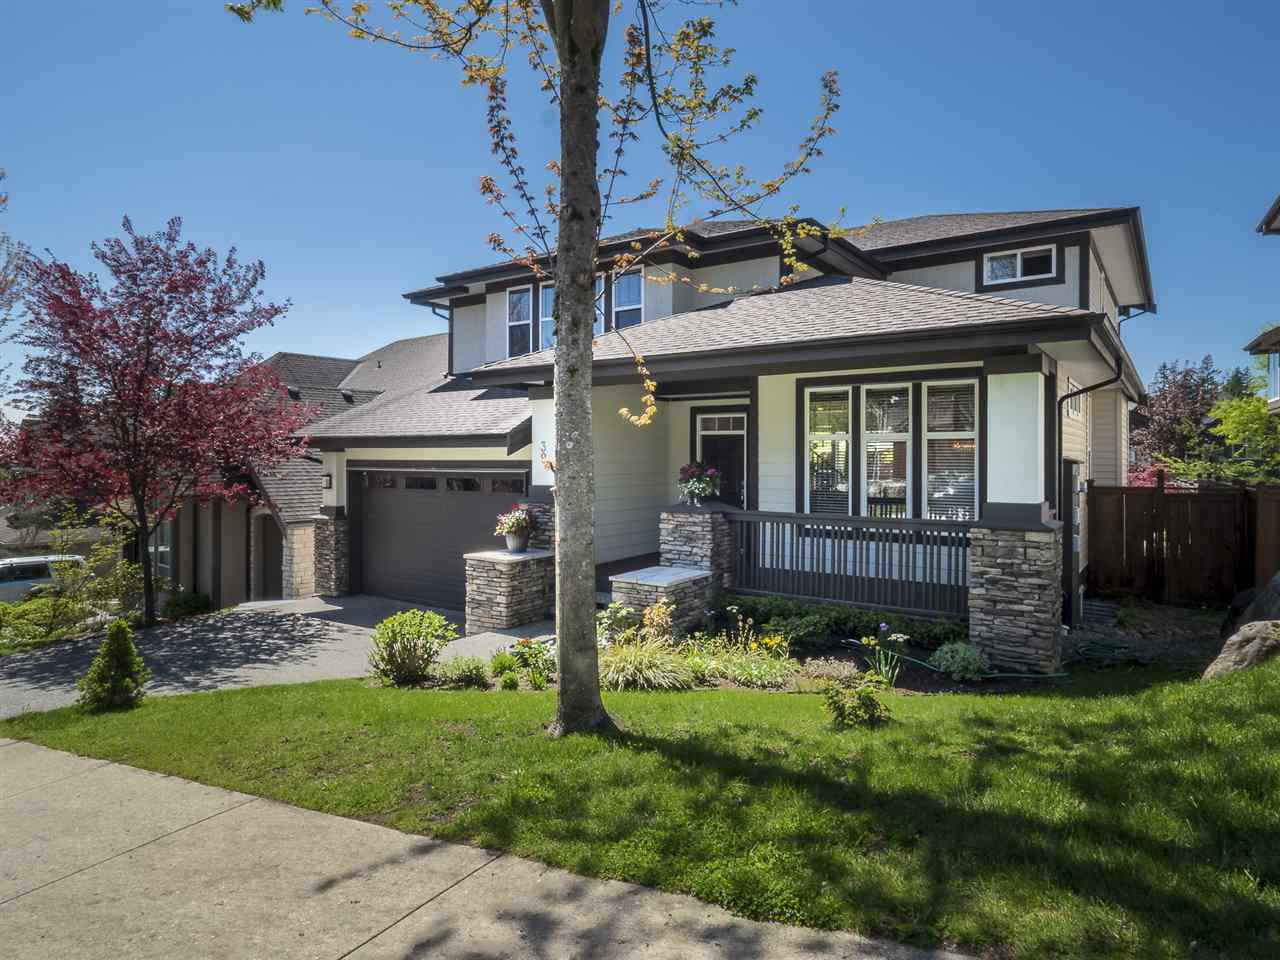 """Main Photo: 39 MAPLE Drive in Port Moody: Heritage Woods PM House for sale in """"August Views"""" : MLS®# R2265710"""